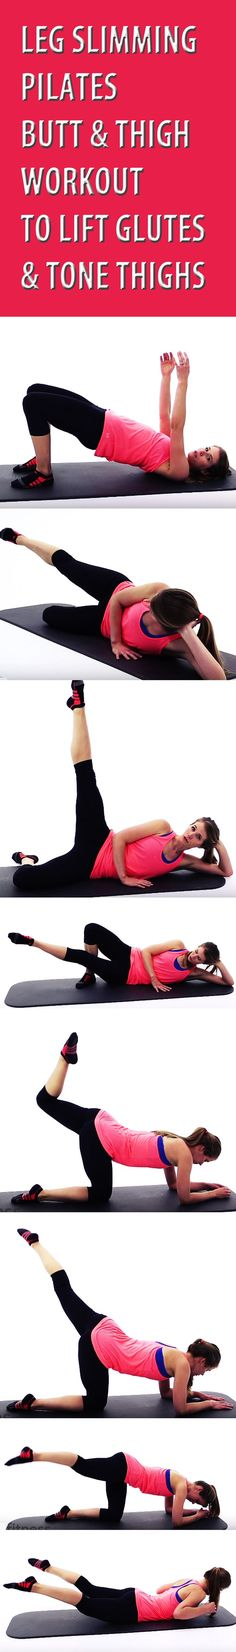 I took a Pilates class once!!! It's so good for you!